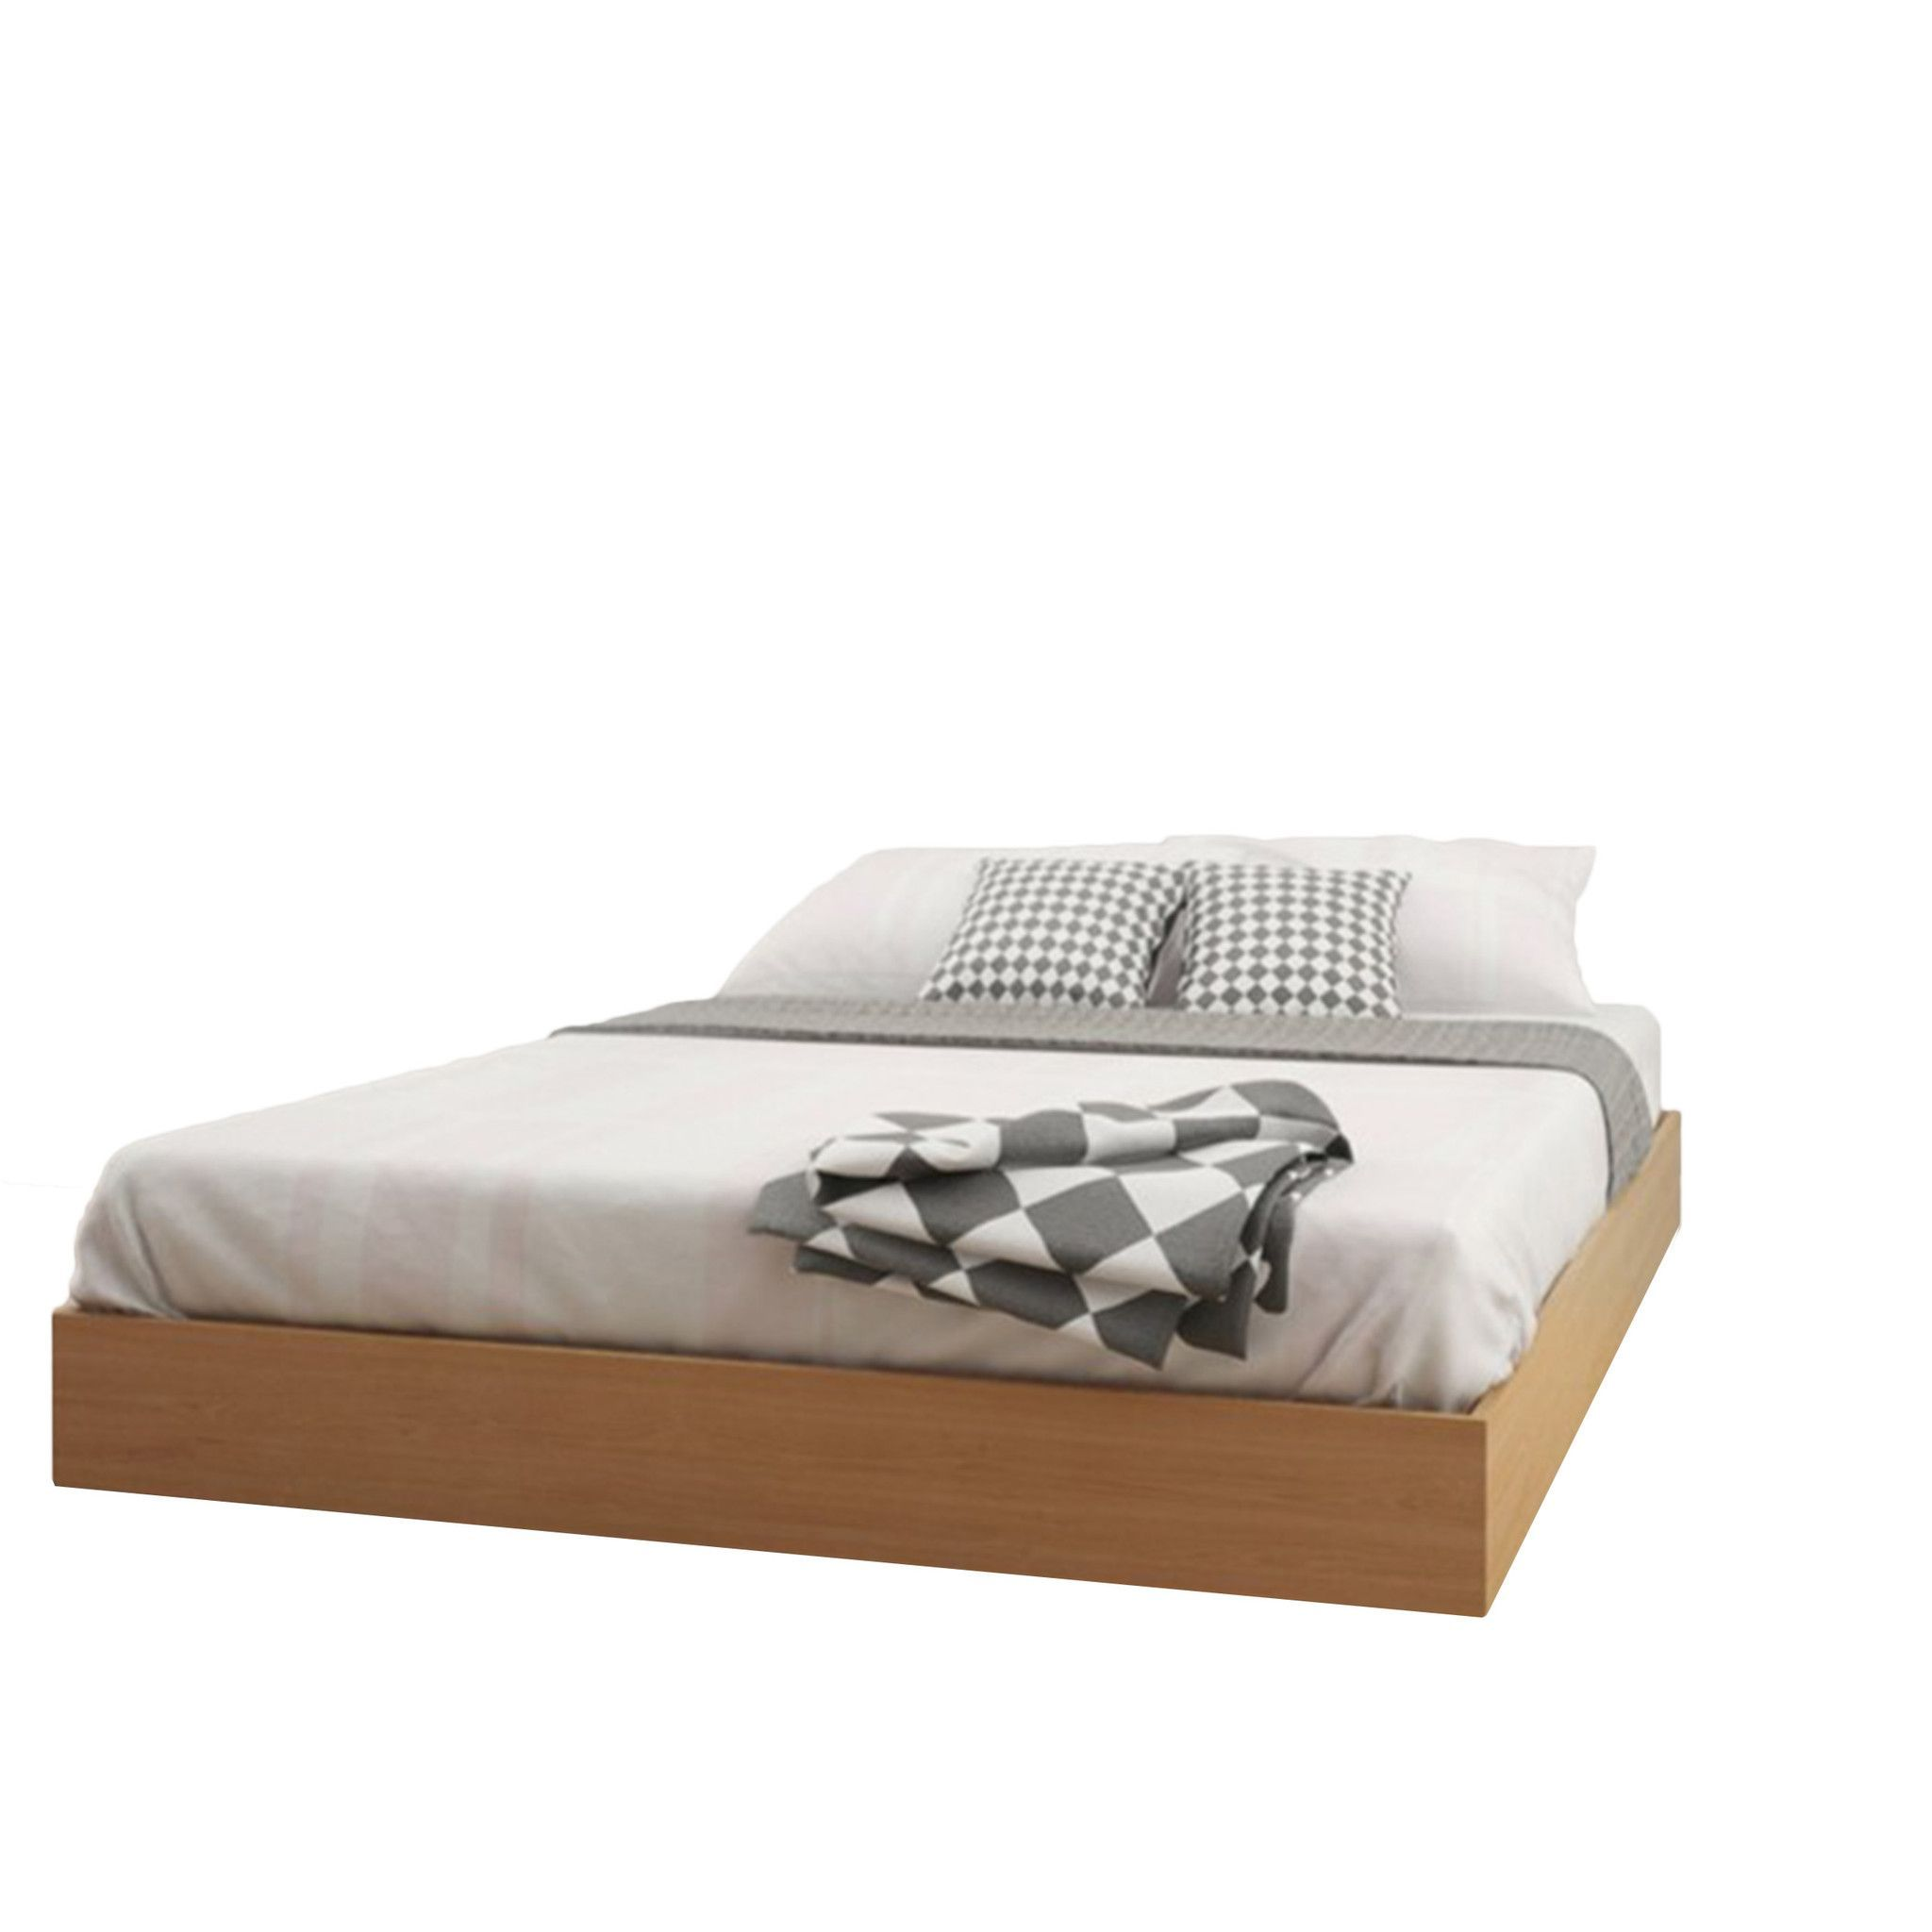 Blanes Queen Size Platform Bed   Products   Pinterest